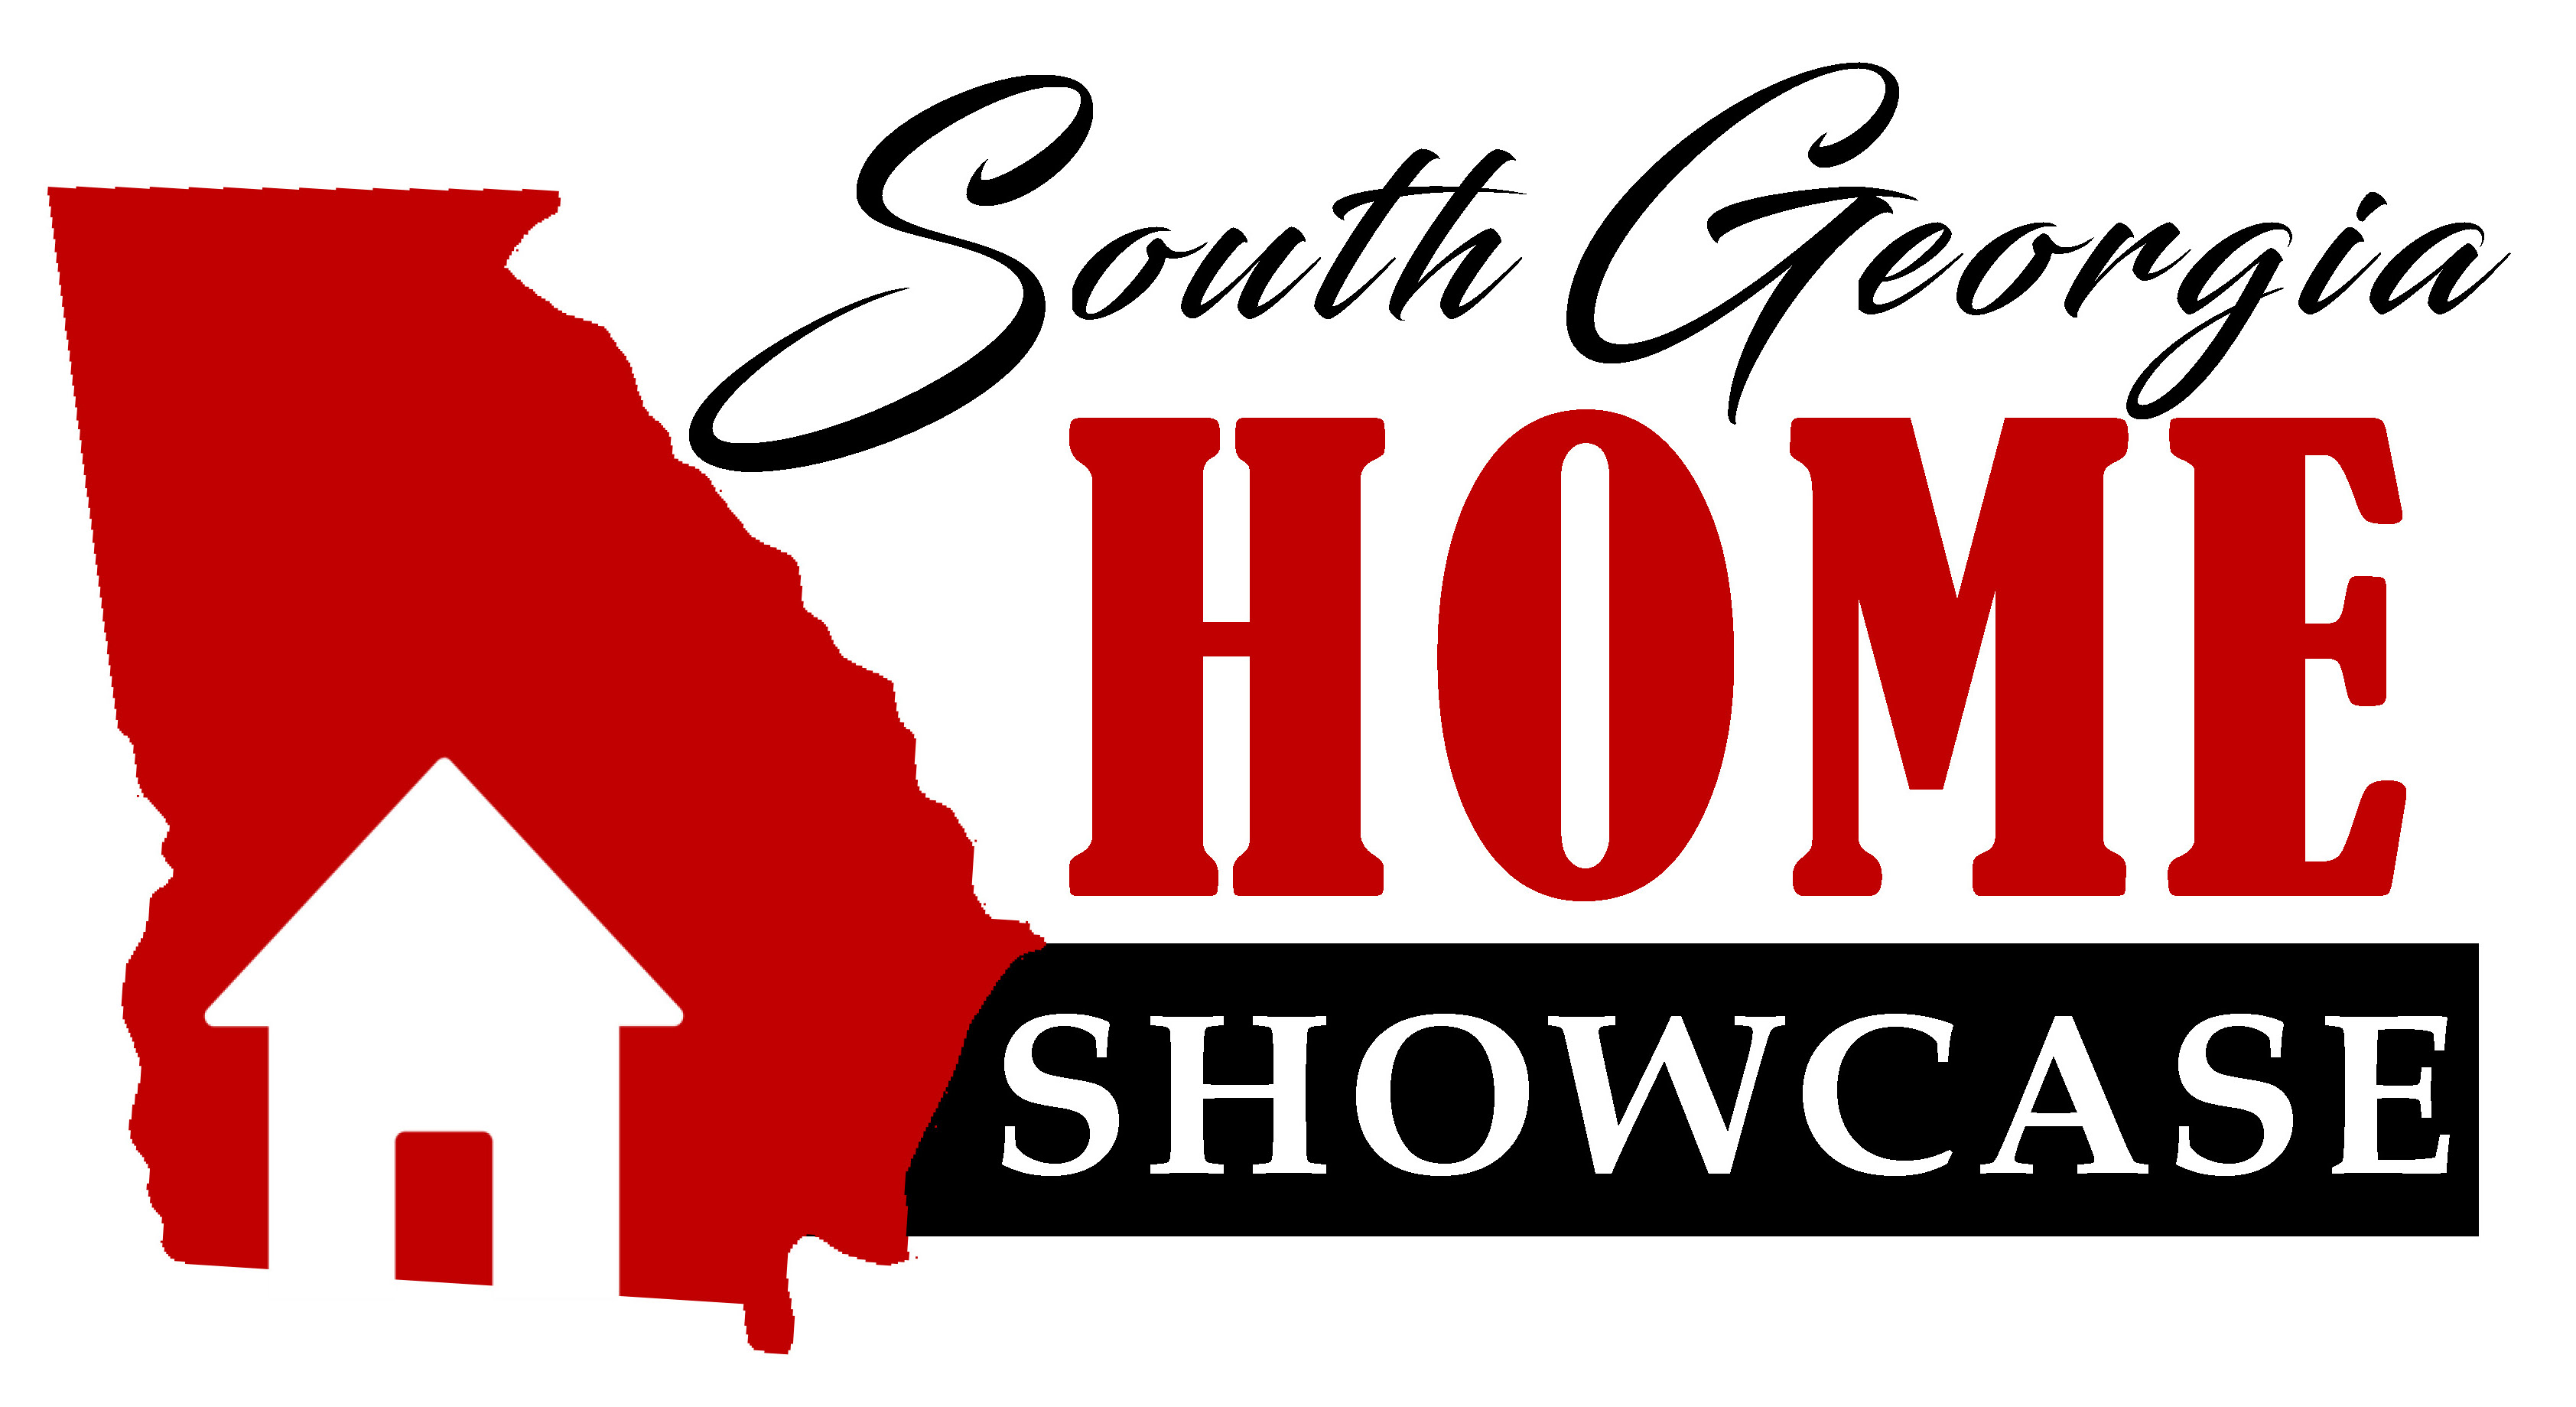 Home Showcase logo_R&B